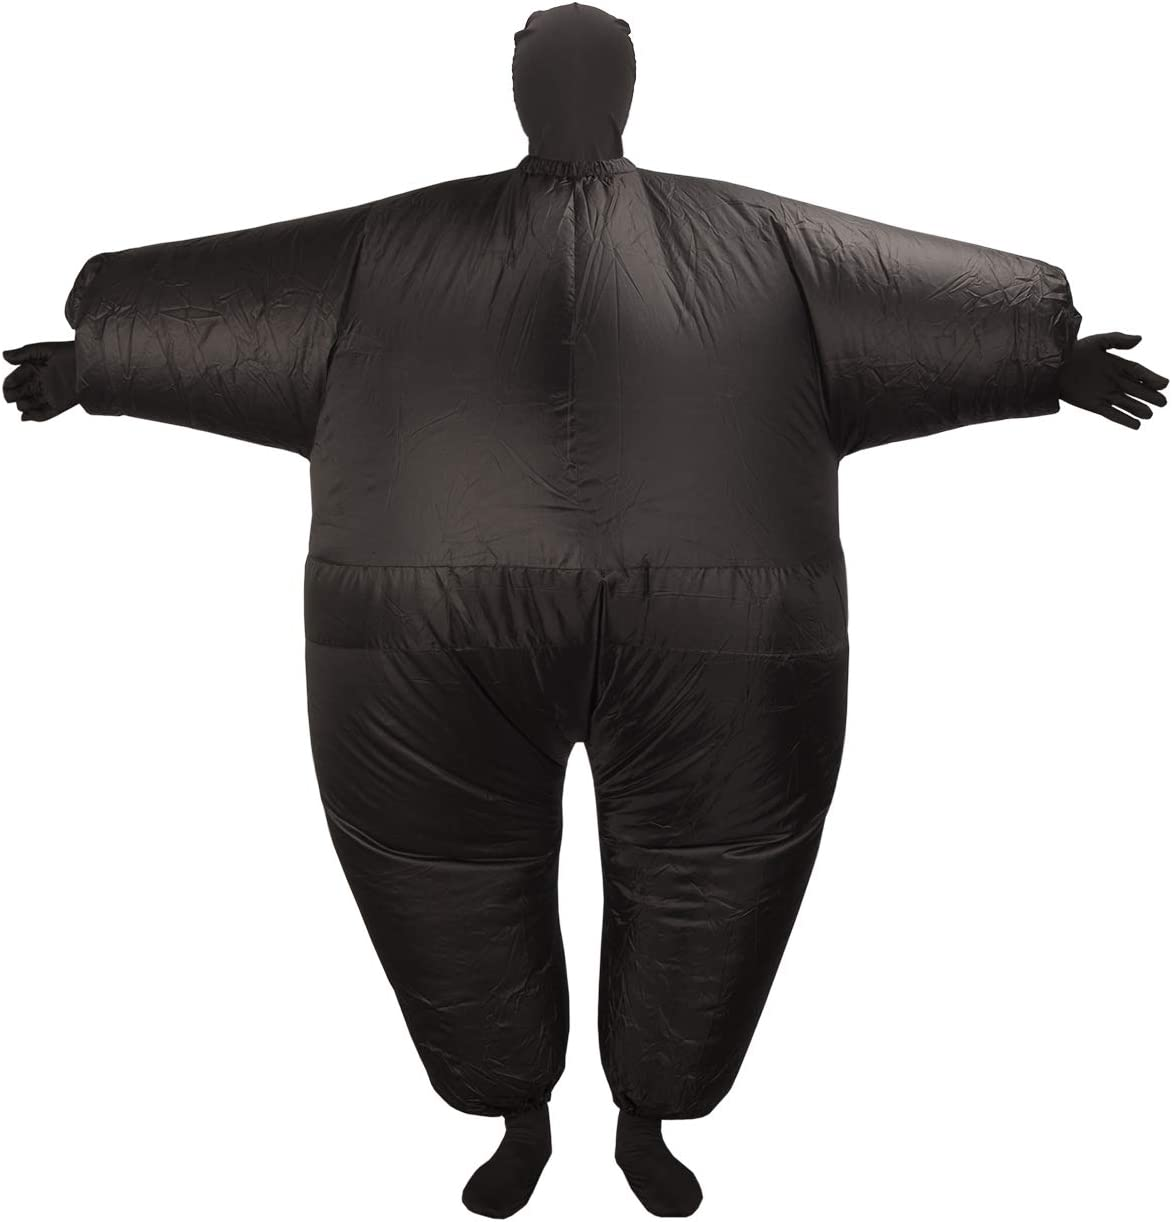 THEE Sumo Gonflable Costume Gonflable Costume pour Halloween